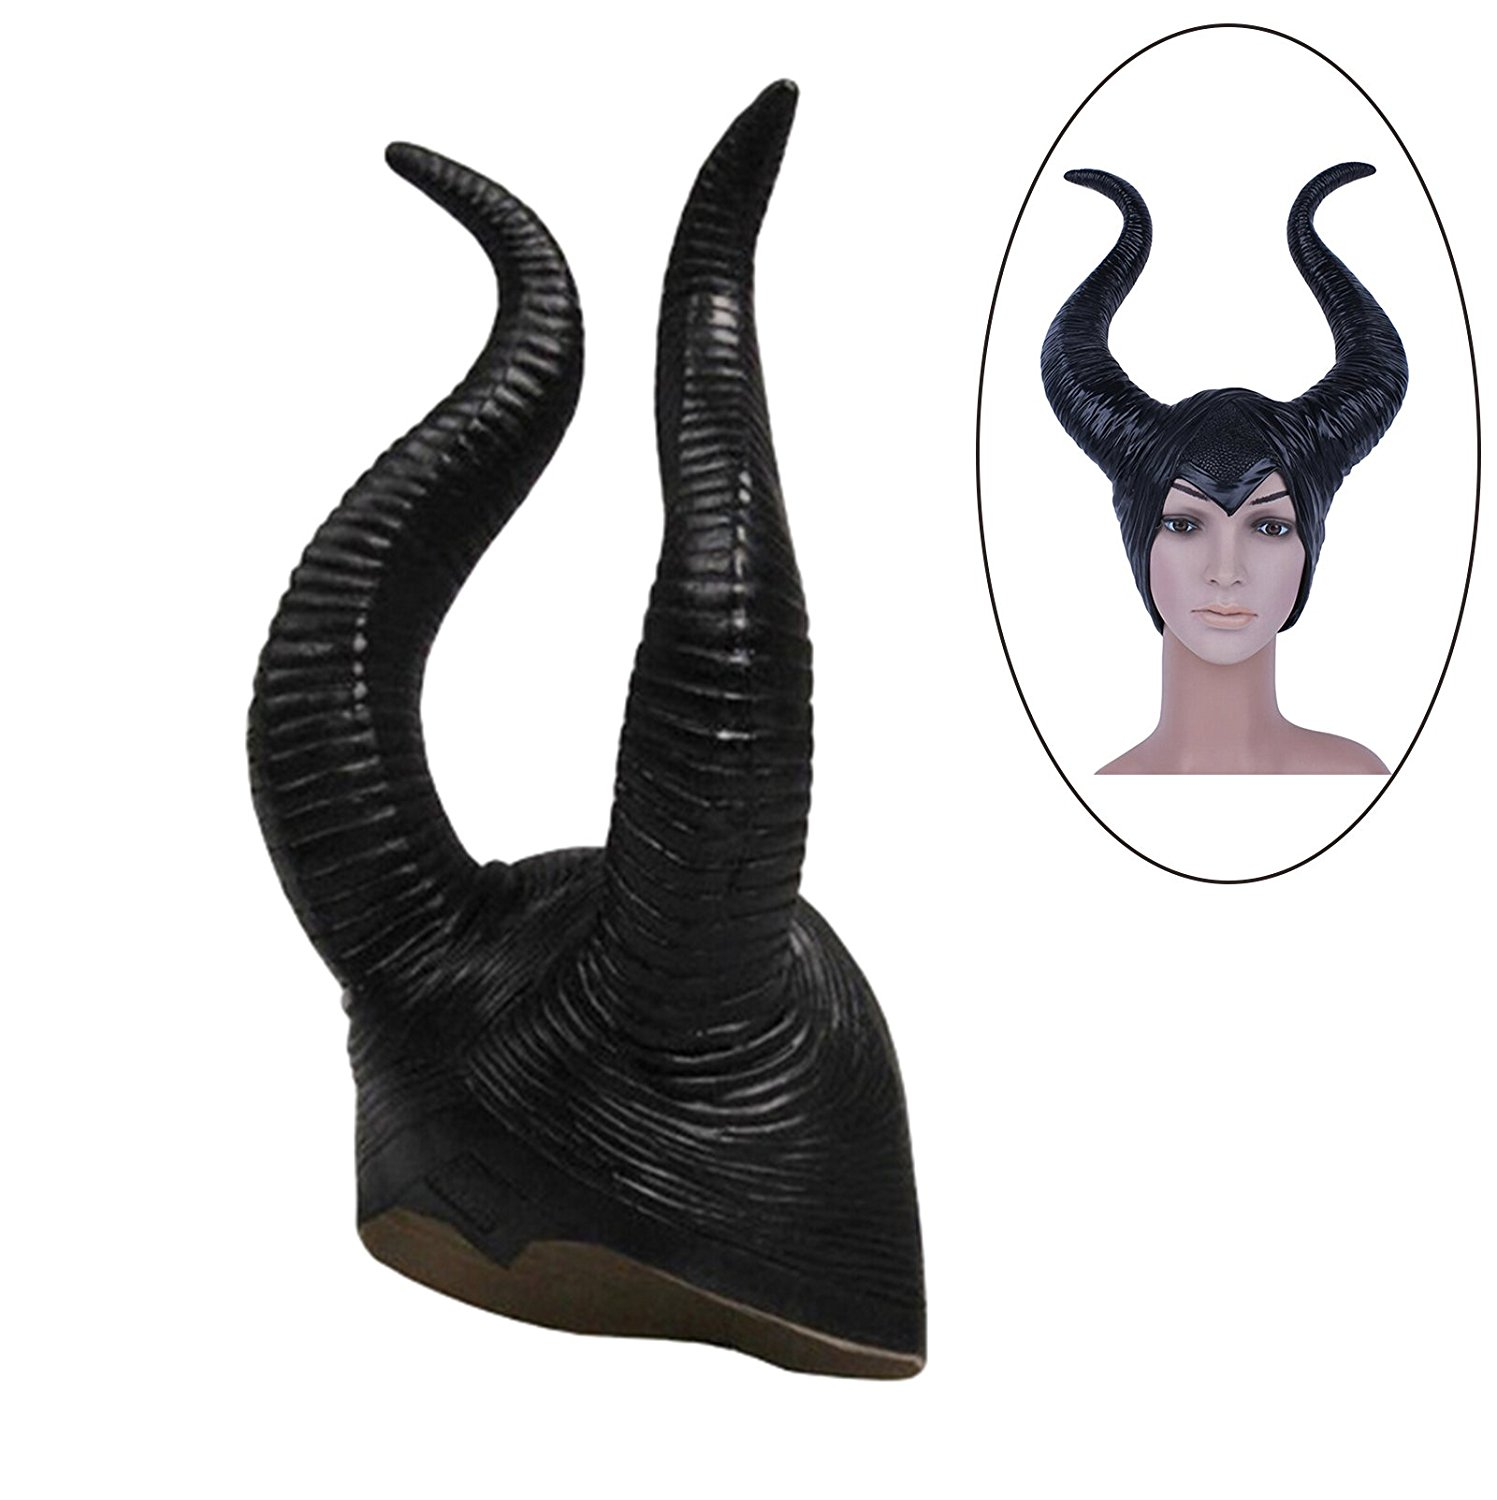 5e0bcb24754 Get Quotations · GZQ Maleficent Hat Horns Evil Queen Headpiece Cosplay  Headwear Costume Headband for Halloween Party